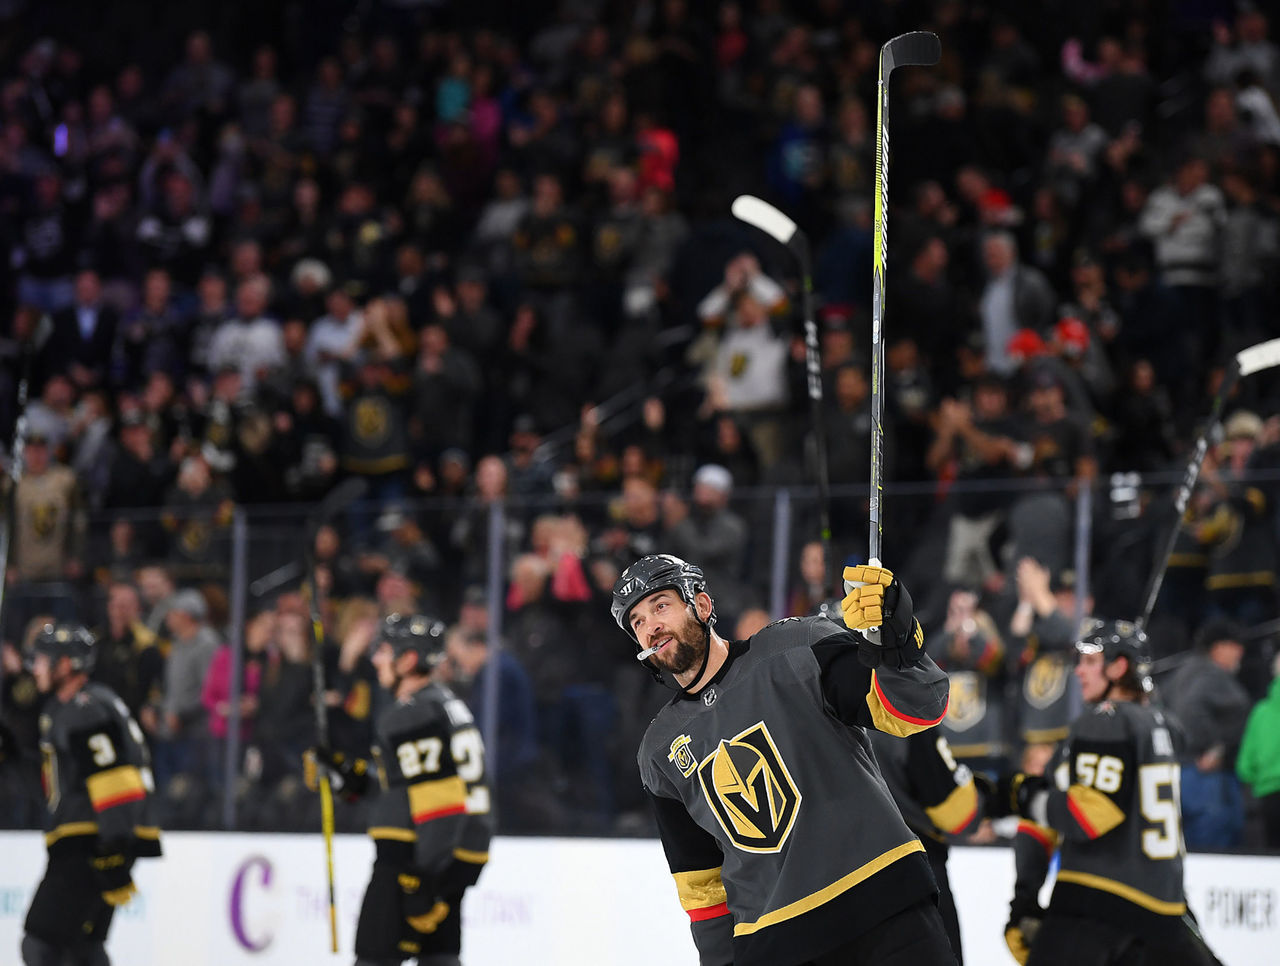 Cropped 2017 11 20t040409z 1421635581 nocid rtrmadp 3 nhl los angeles kings at vegas golden knights